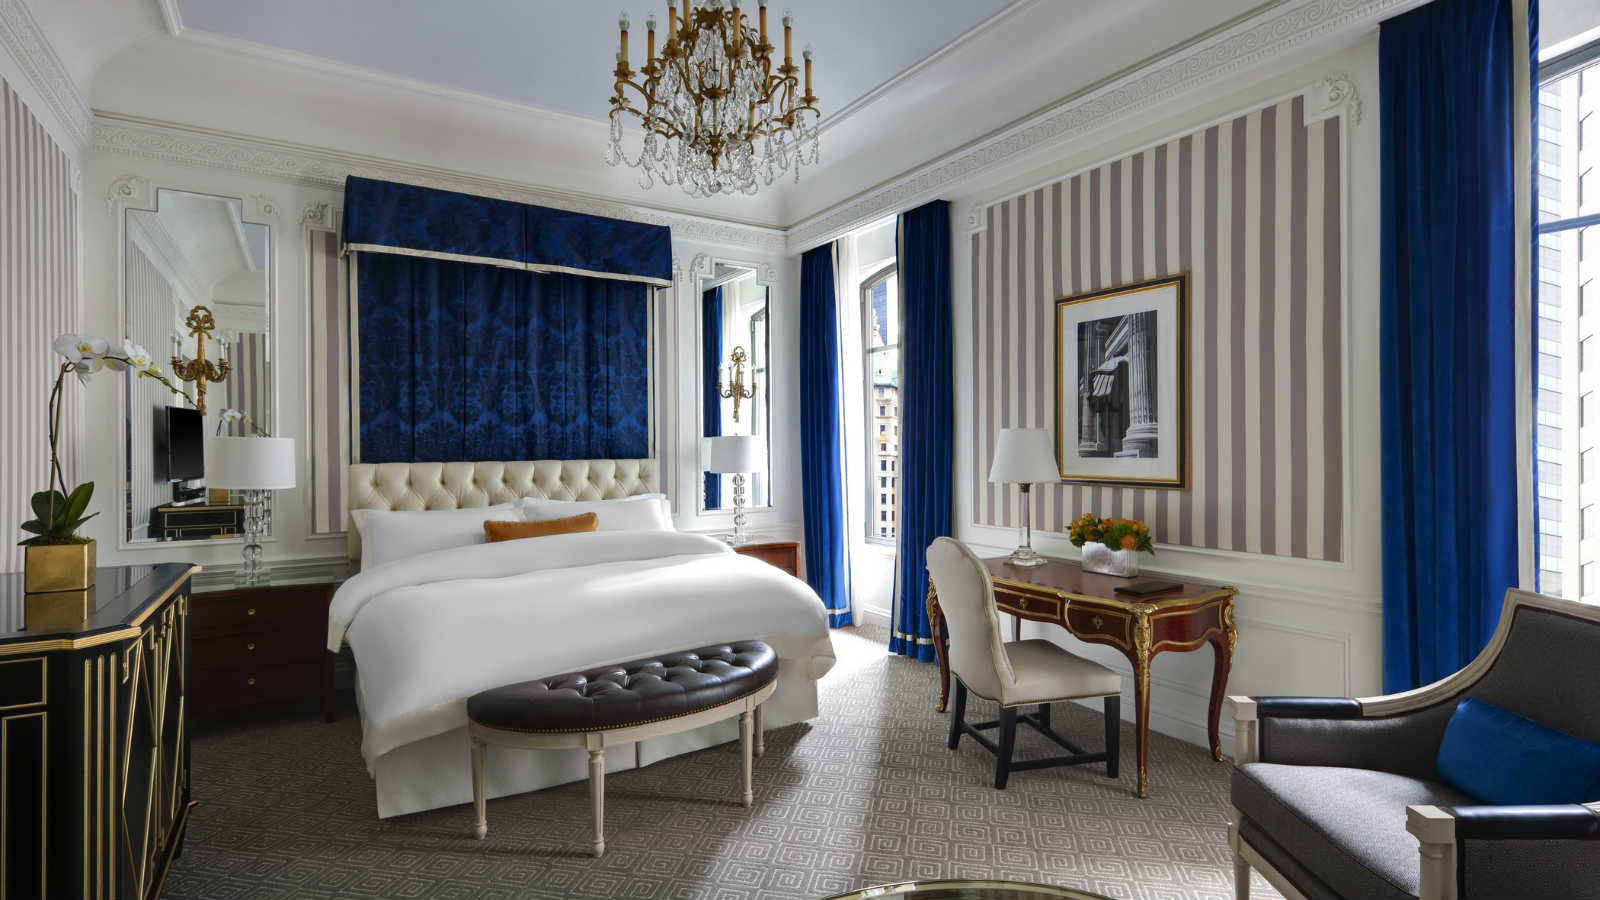 Bedroom Alarm Clock Luxury Hotel In New York City The St Regis New York